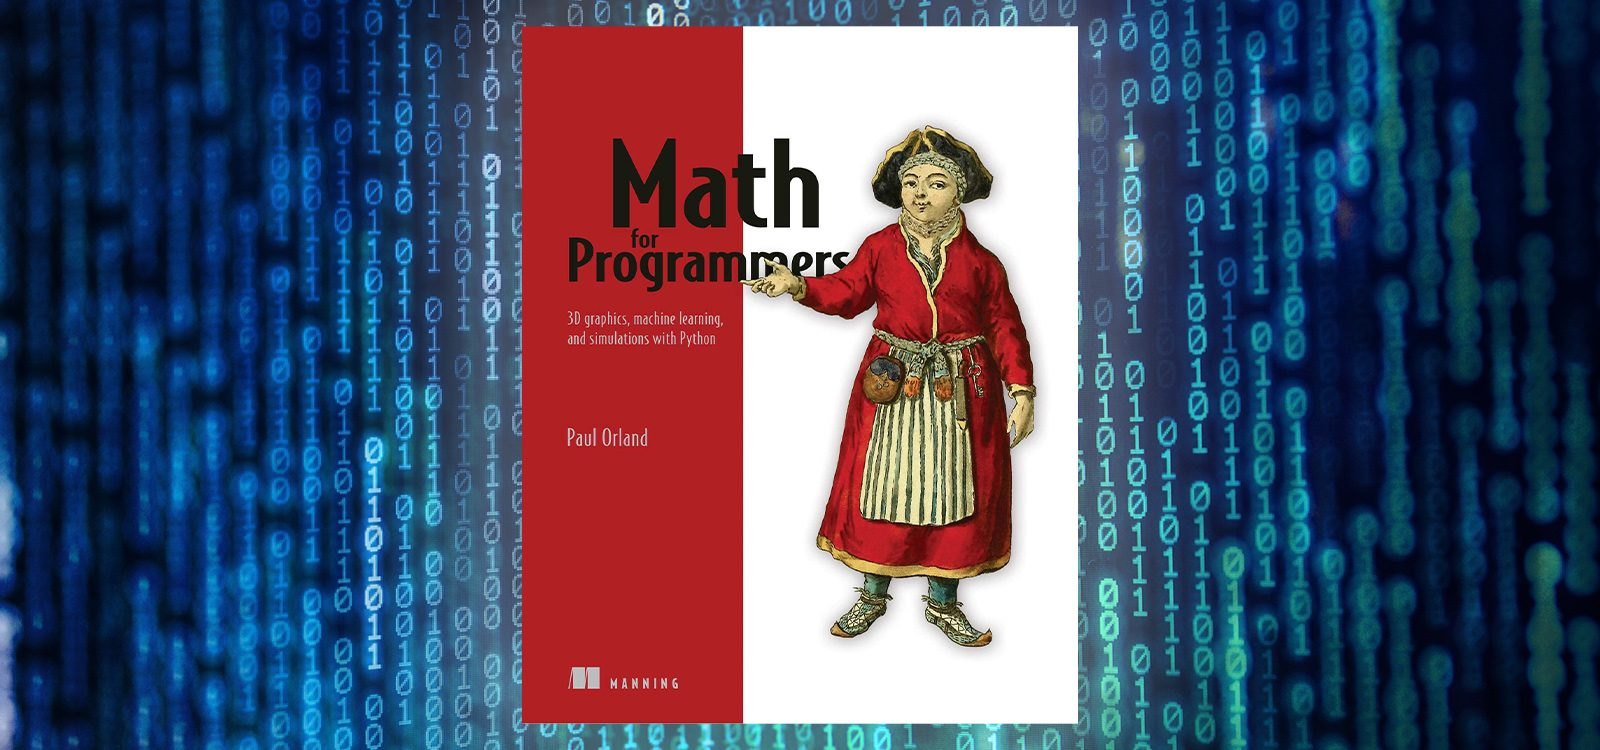 'Math for Programmers' review